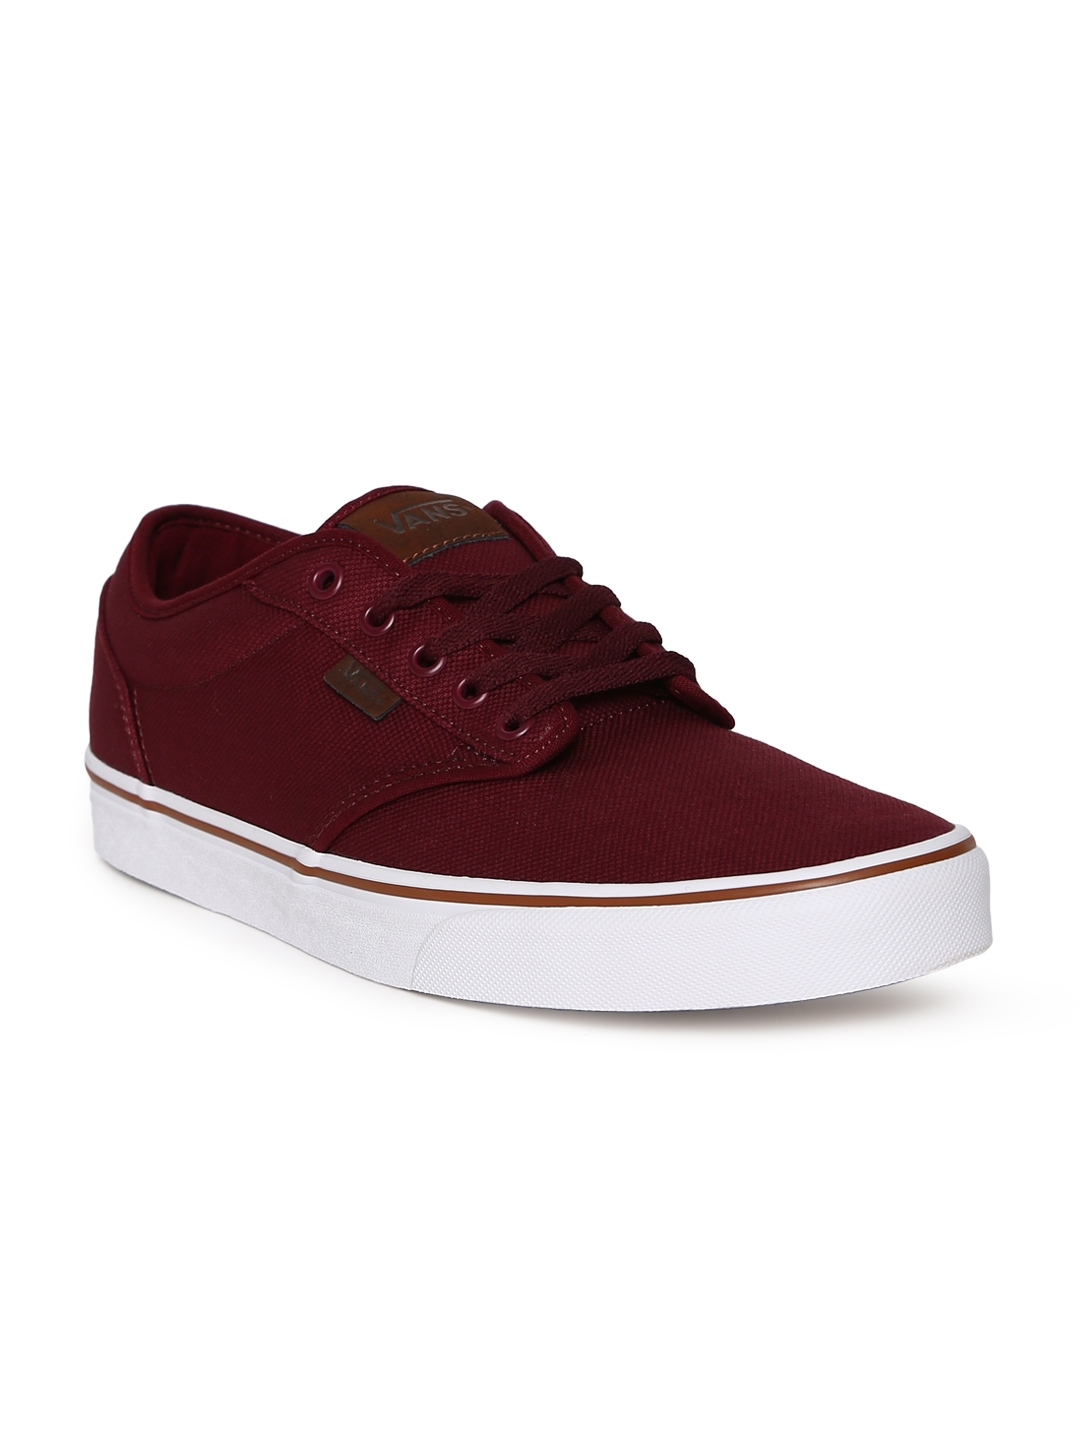 d6c5e0bb94f Buy Vans Men Red Atwood Sneakers - Casual Shoes for Men 4293181